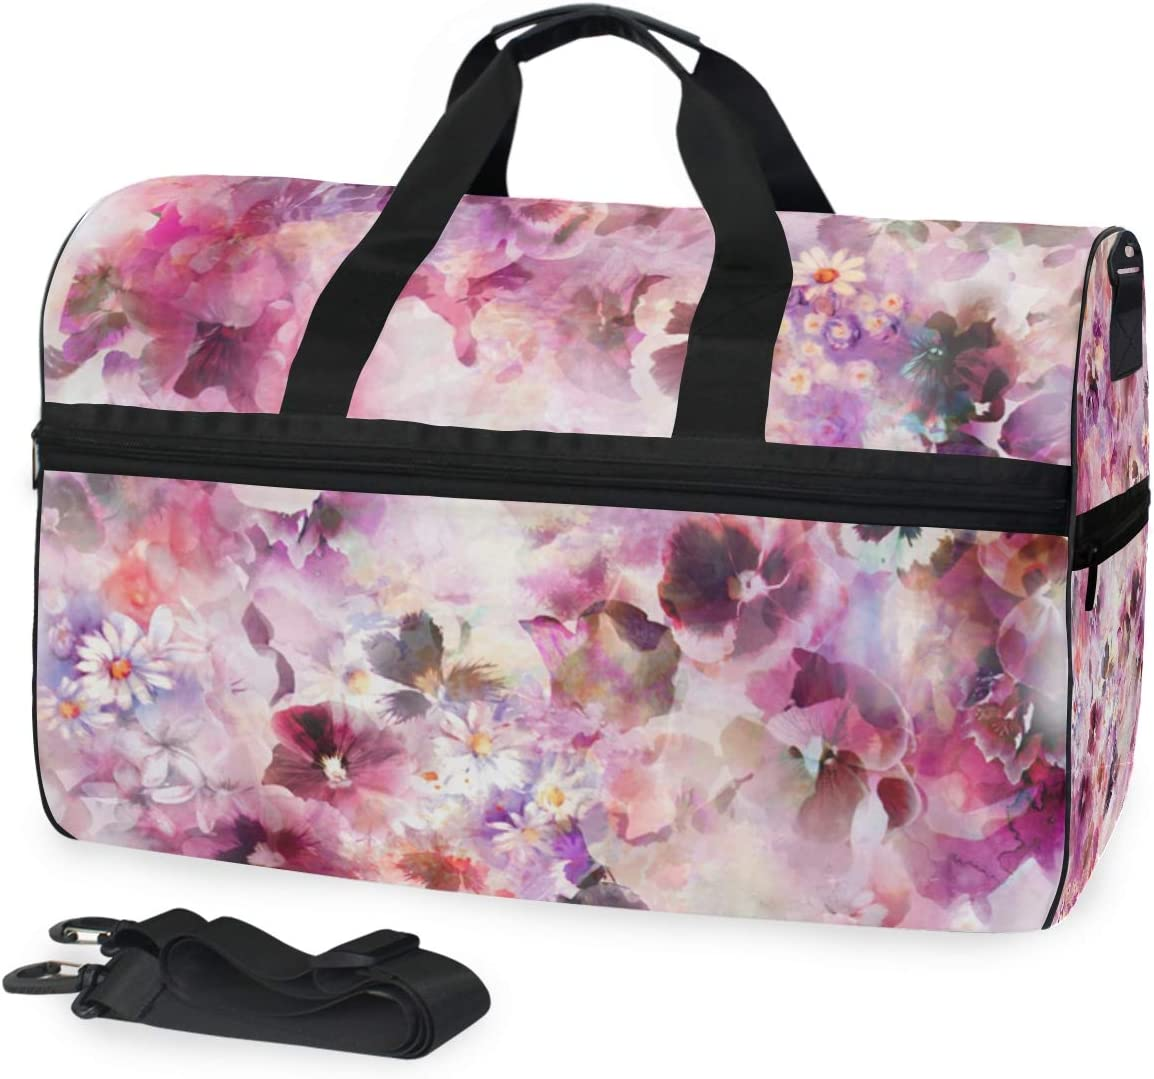 MUOOUM Art Flower Watercolor Print Large Duffle Bags Sports Gym Bag with Shoes Compartment for Men and Women